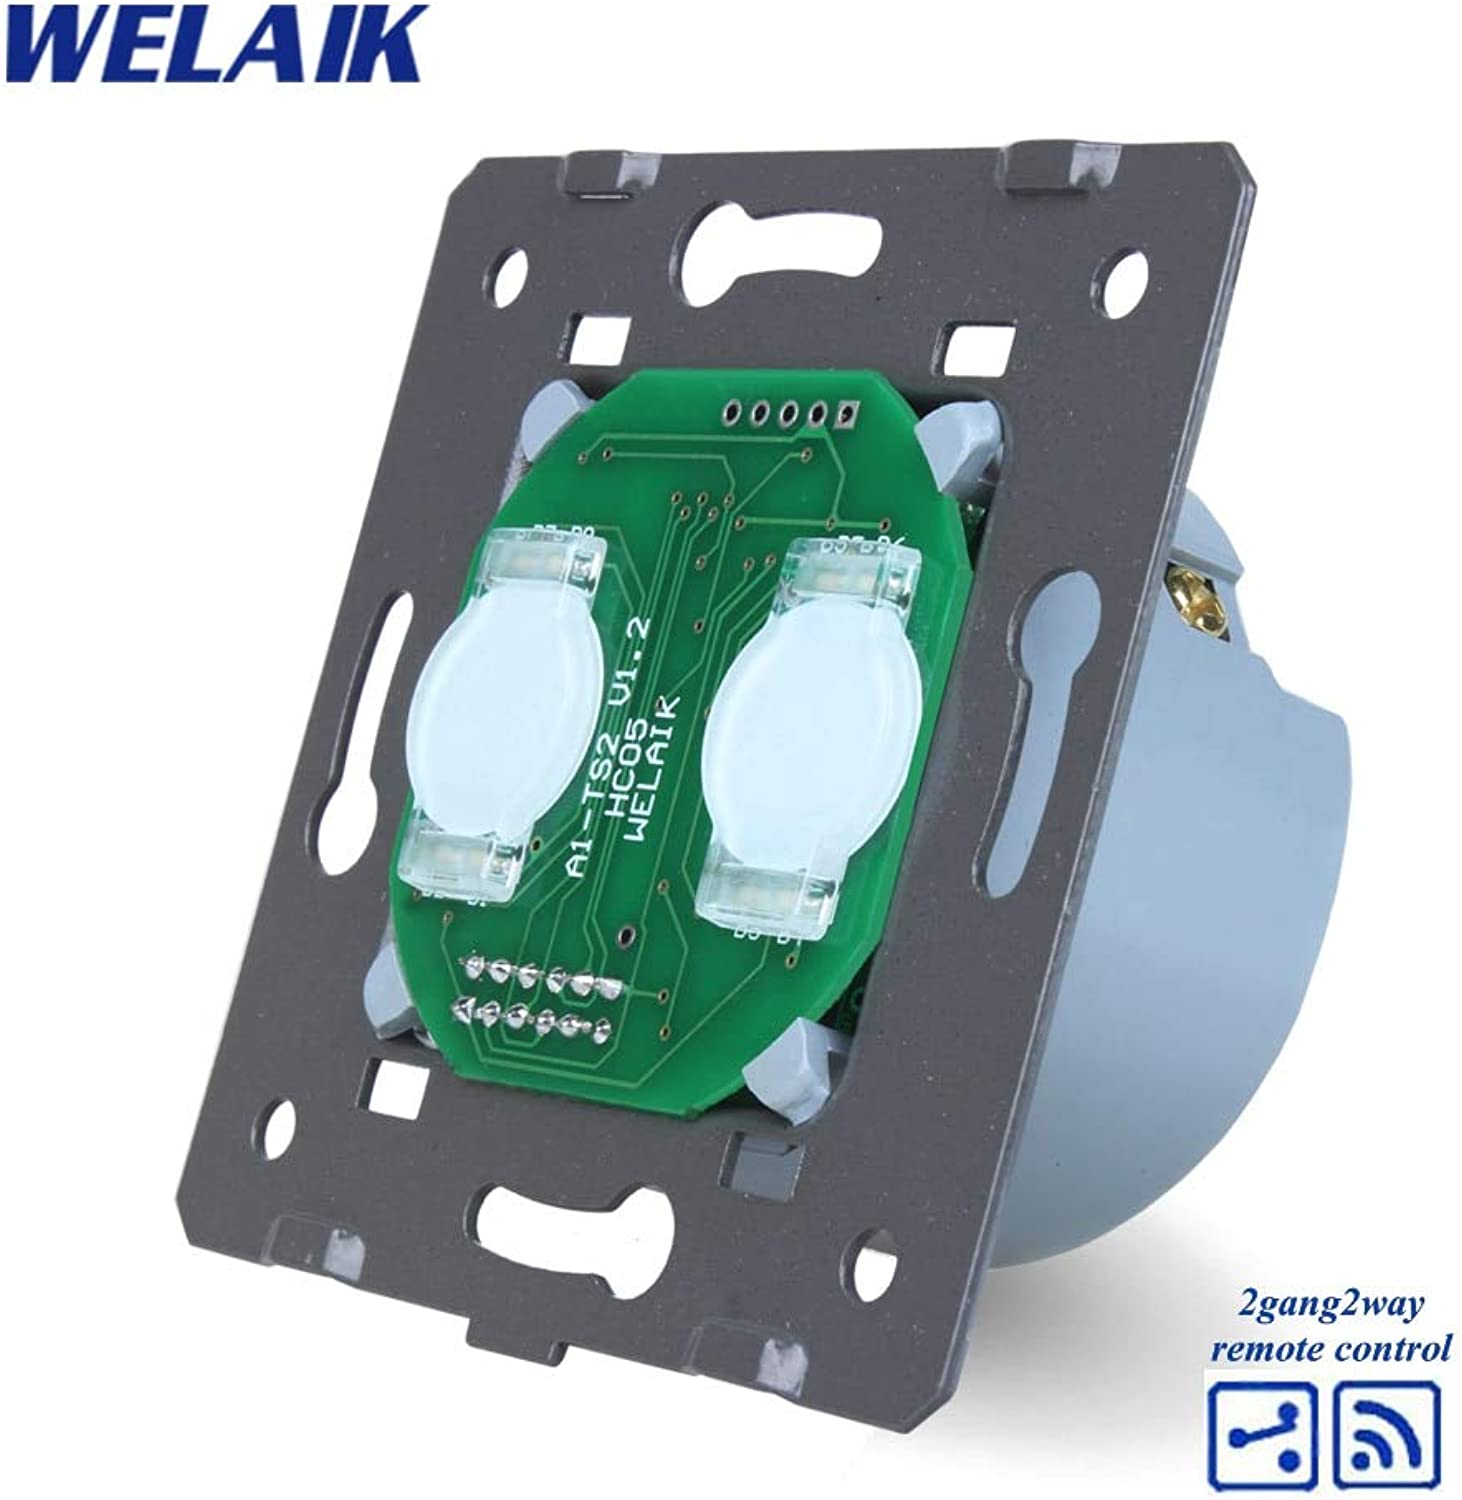 WELAIK Switch White Wall Switch EU Remote Control Touch Switch DIY Parts Screen Wall Light Switch 2gang2way AC110250V A924